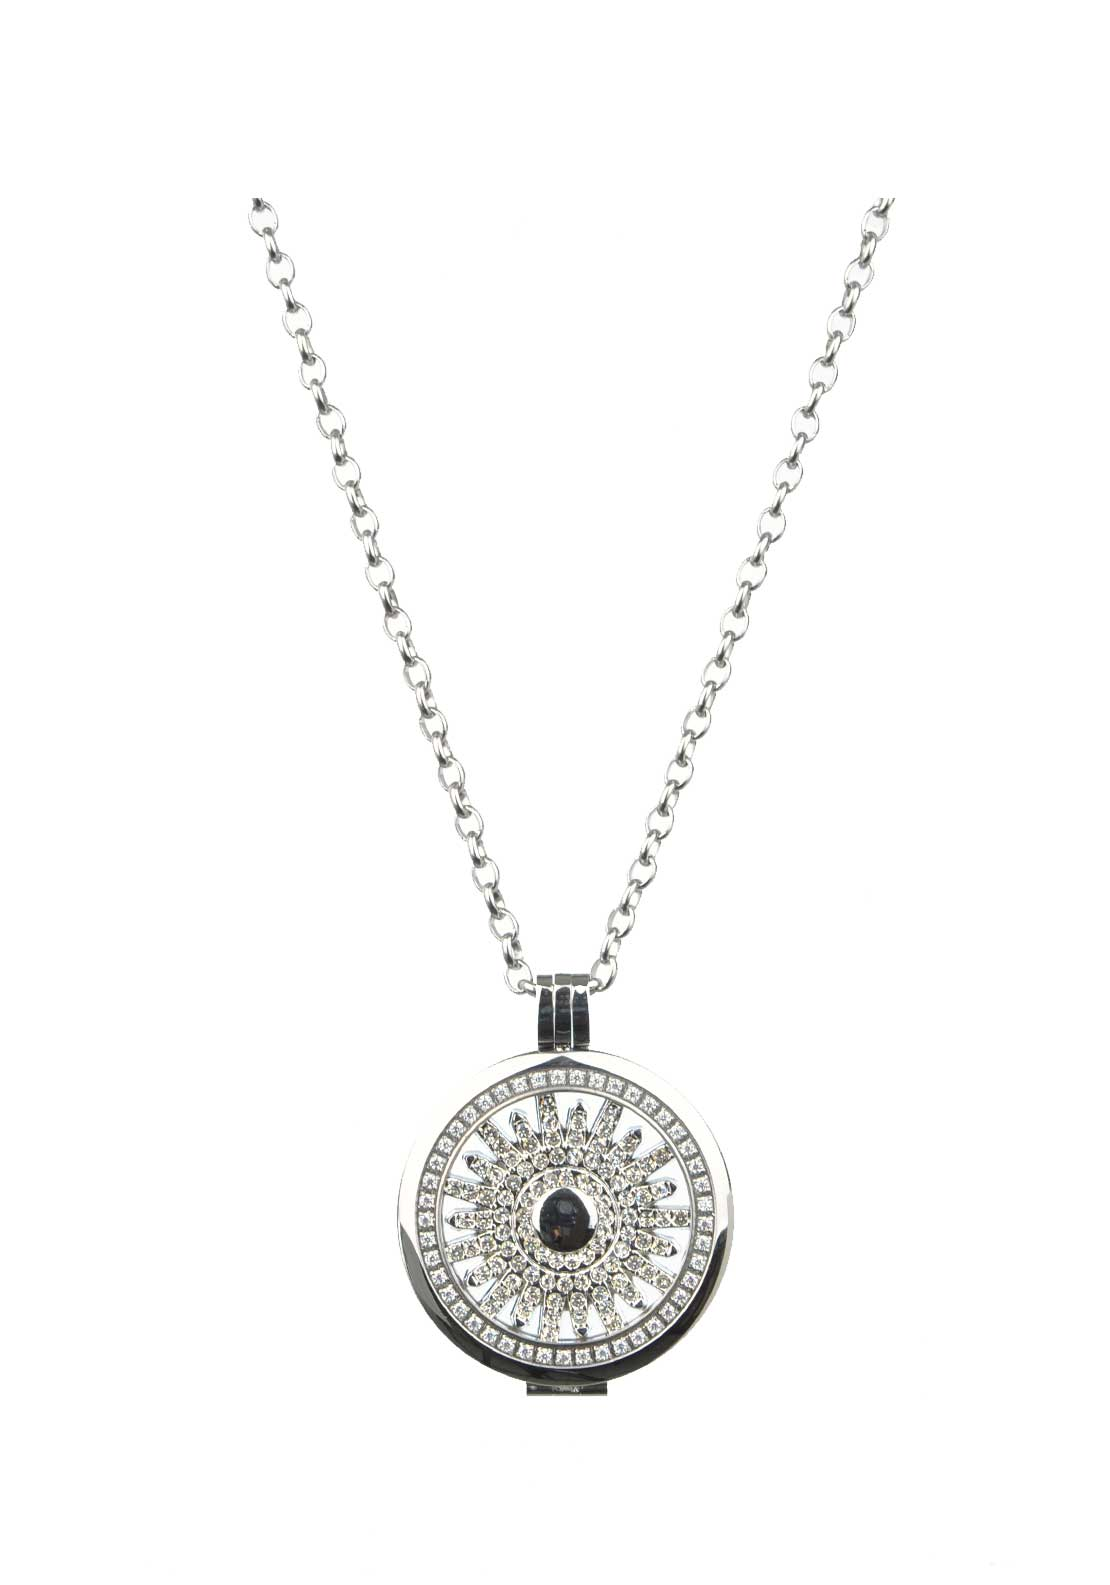 Absolute Jewellery Large Sunburst Pendant and Chain, Silver